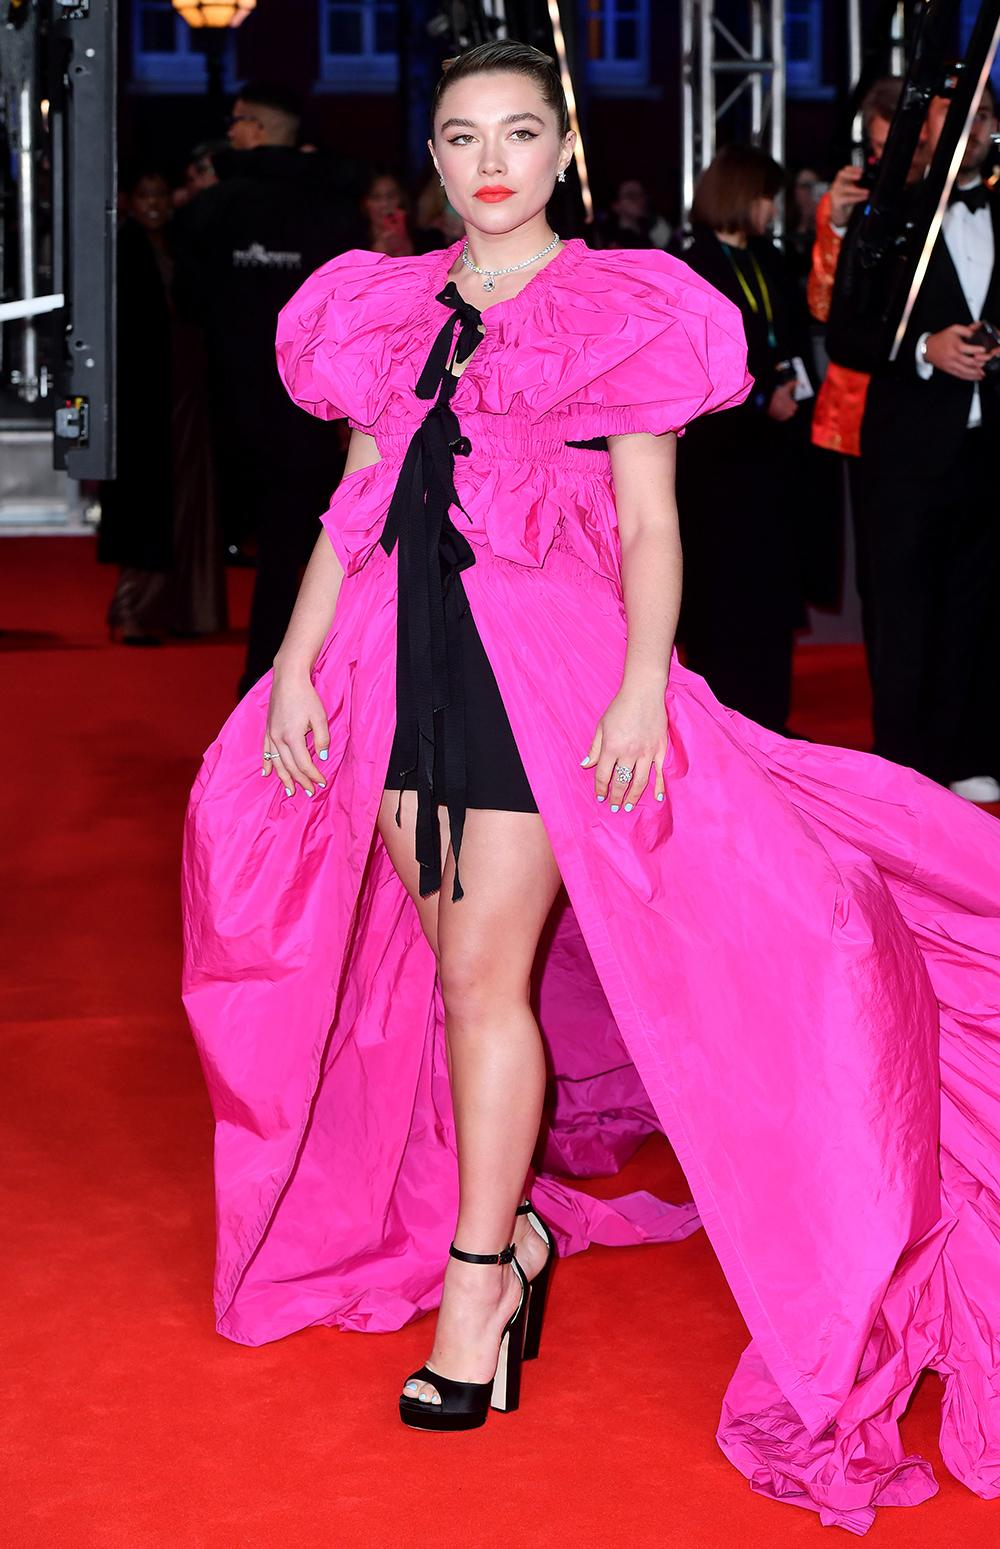 Florence Pugh wowed in a bright pink mini dress with a dramatic train [Image: PA]